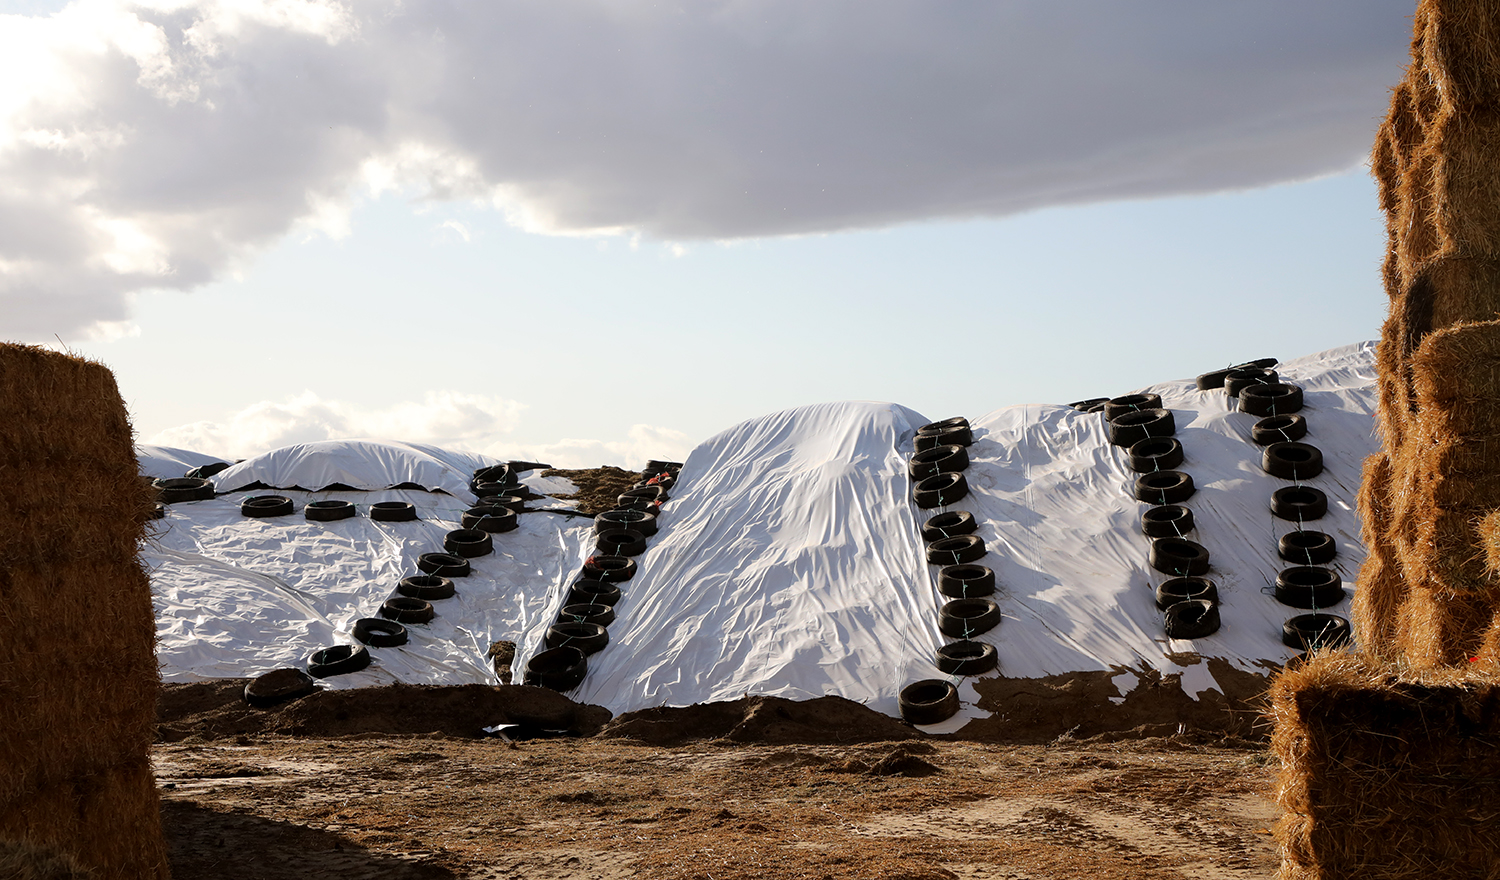 A silage pile covered in white plastic and recycled tires